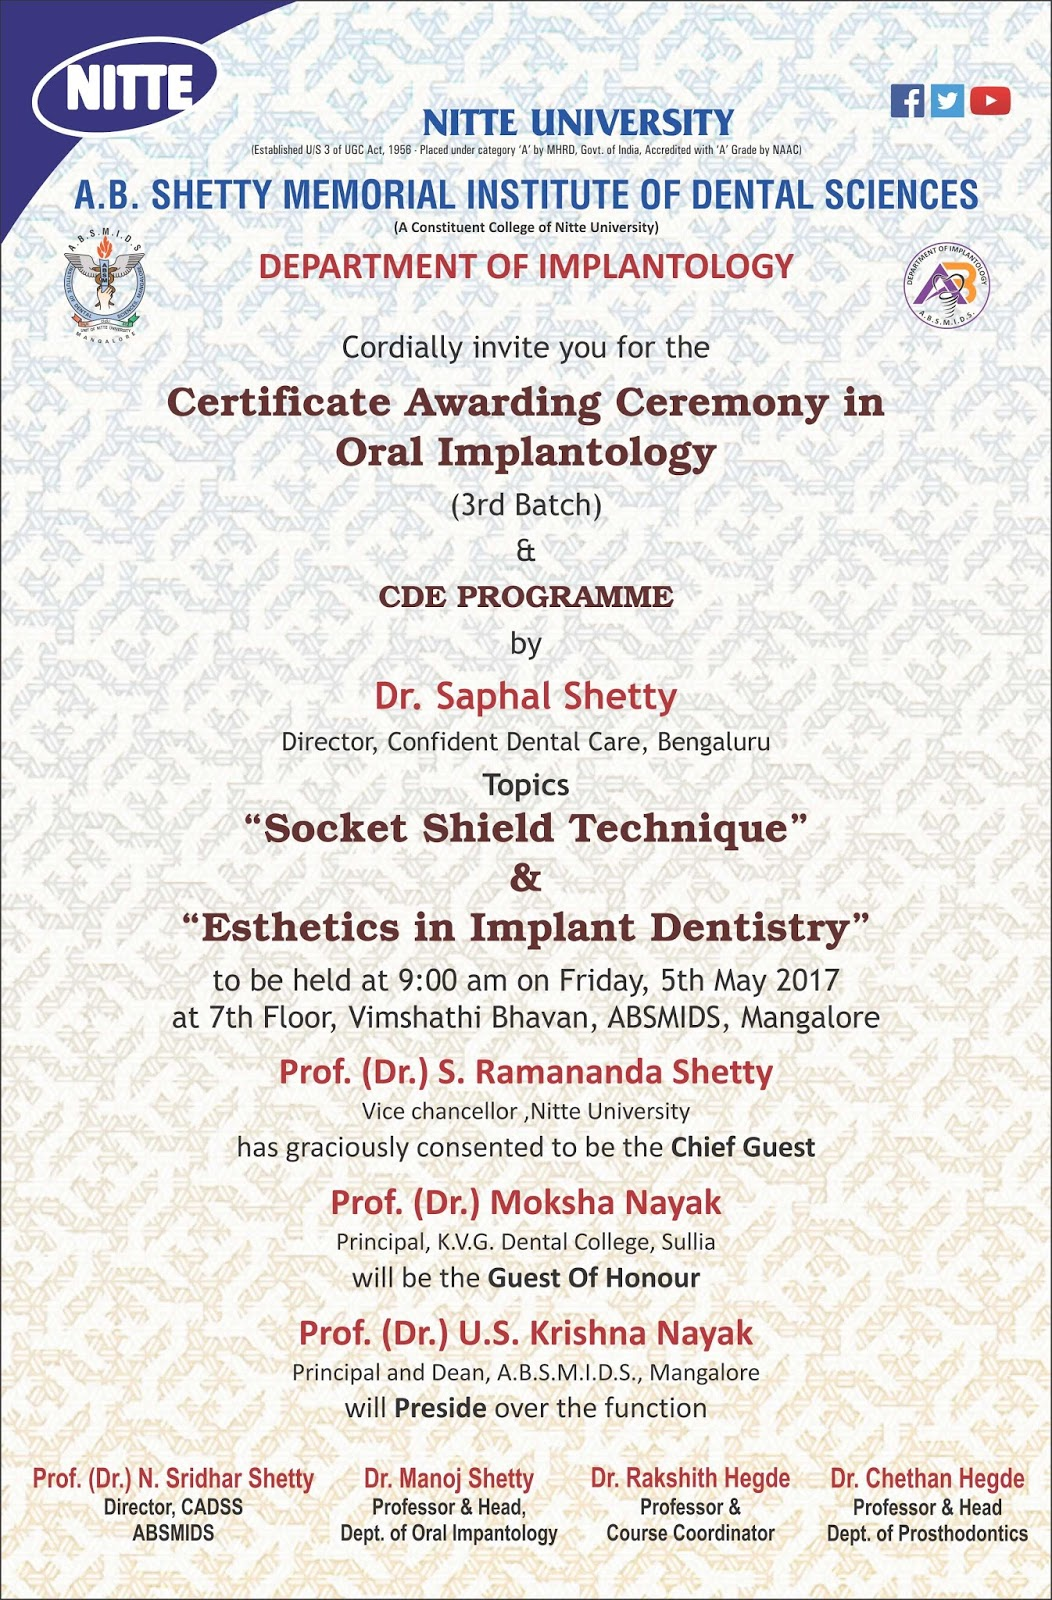 Certificate Awarding Ceremony In Oral Implantology And Cde Program